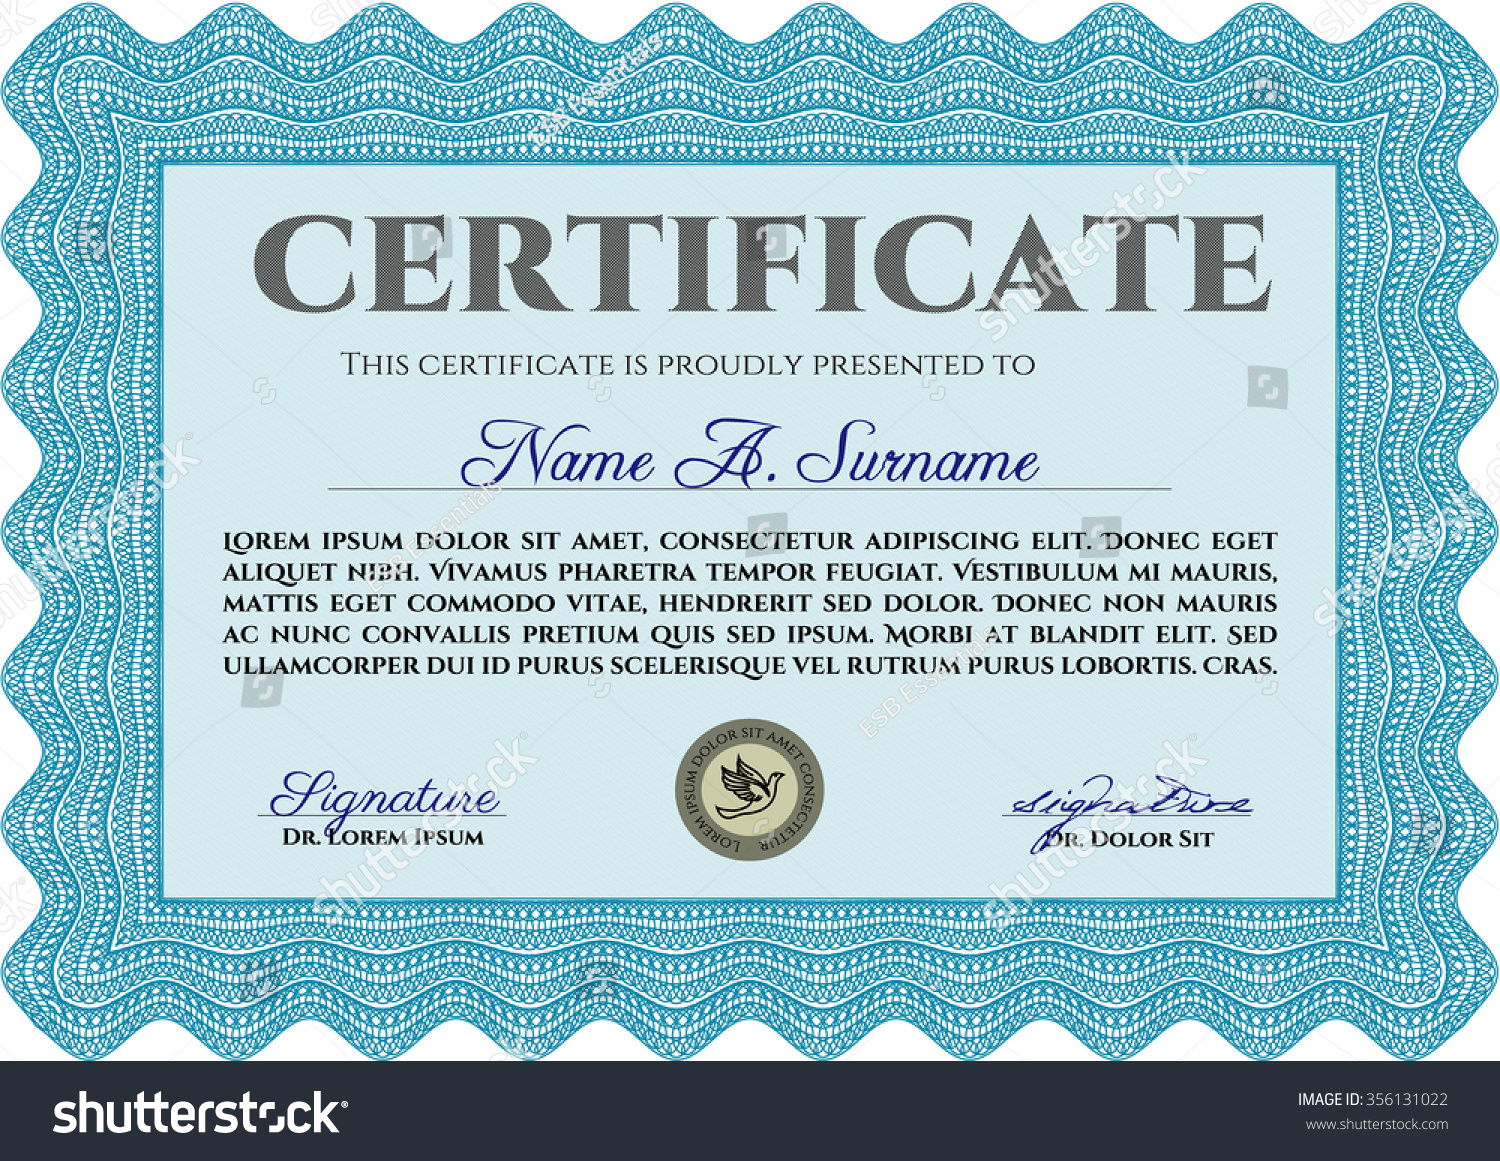 certificate template diploma template complex background stock  certificate template or diploma template complex background artistry design money style